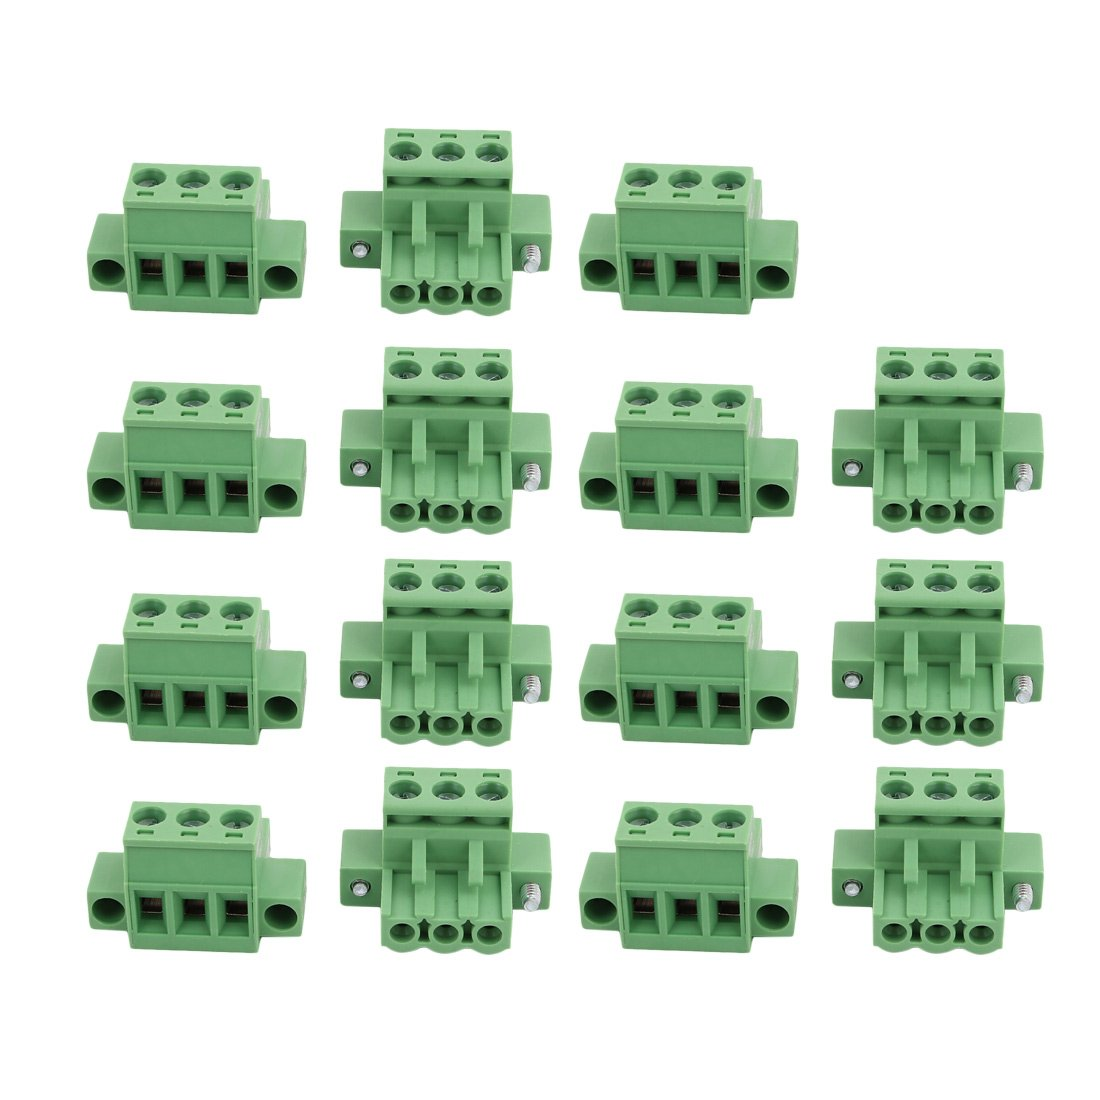 uxcell 15 Pcs LC1M AC300V 15A 5.0mm Pitch 3P PCB Mount Terminal Block Wire Connector